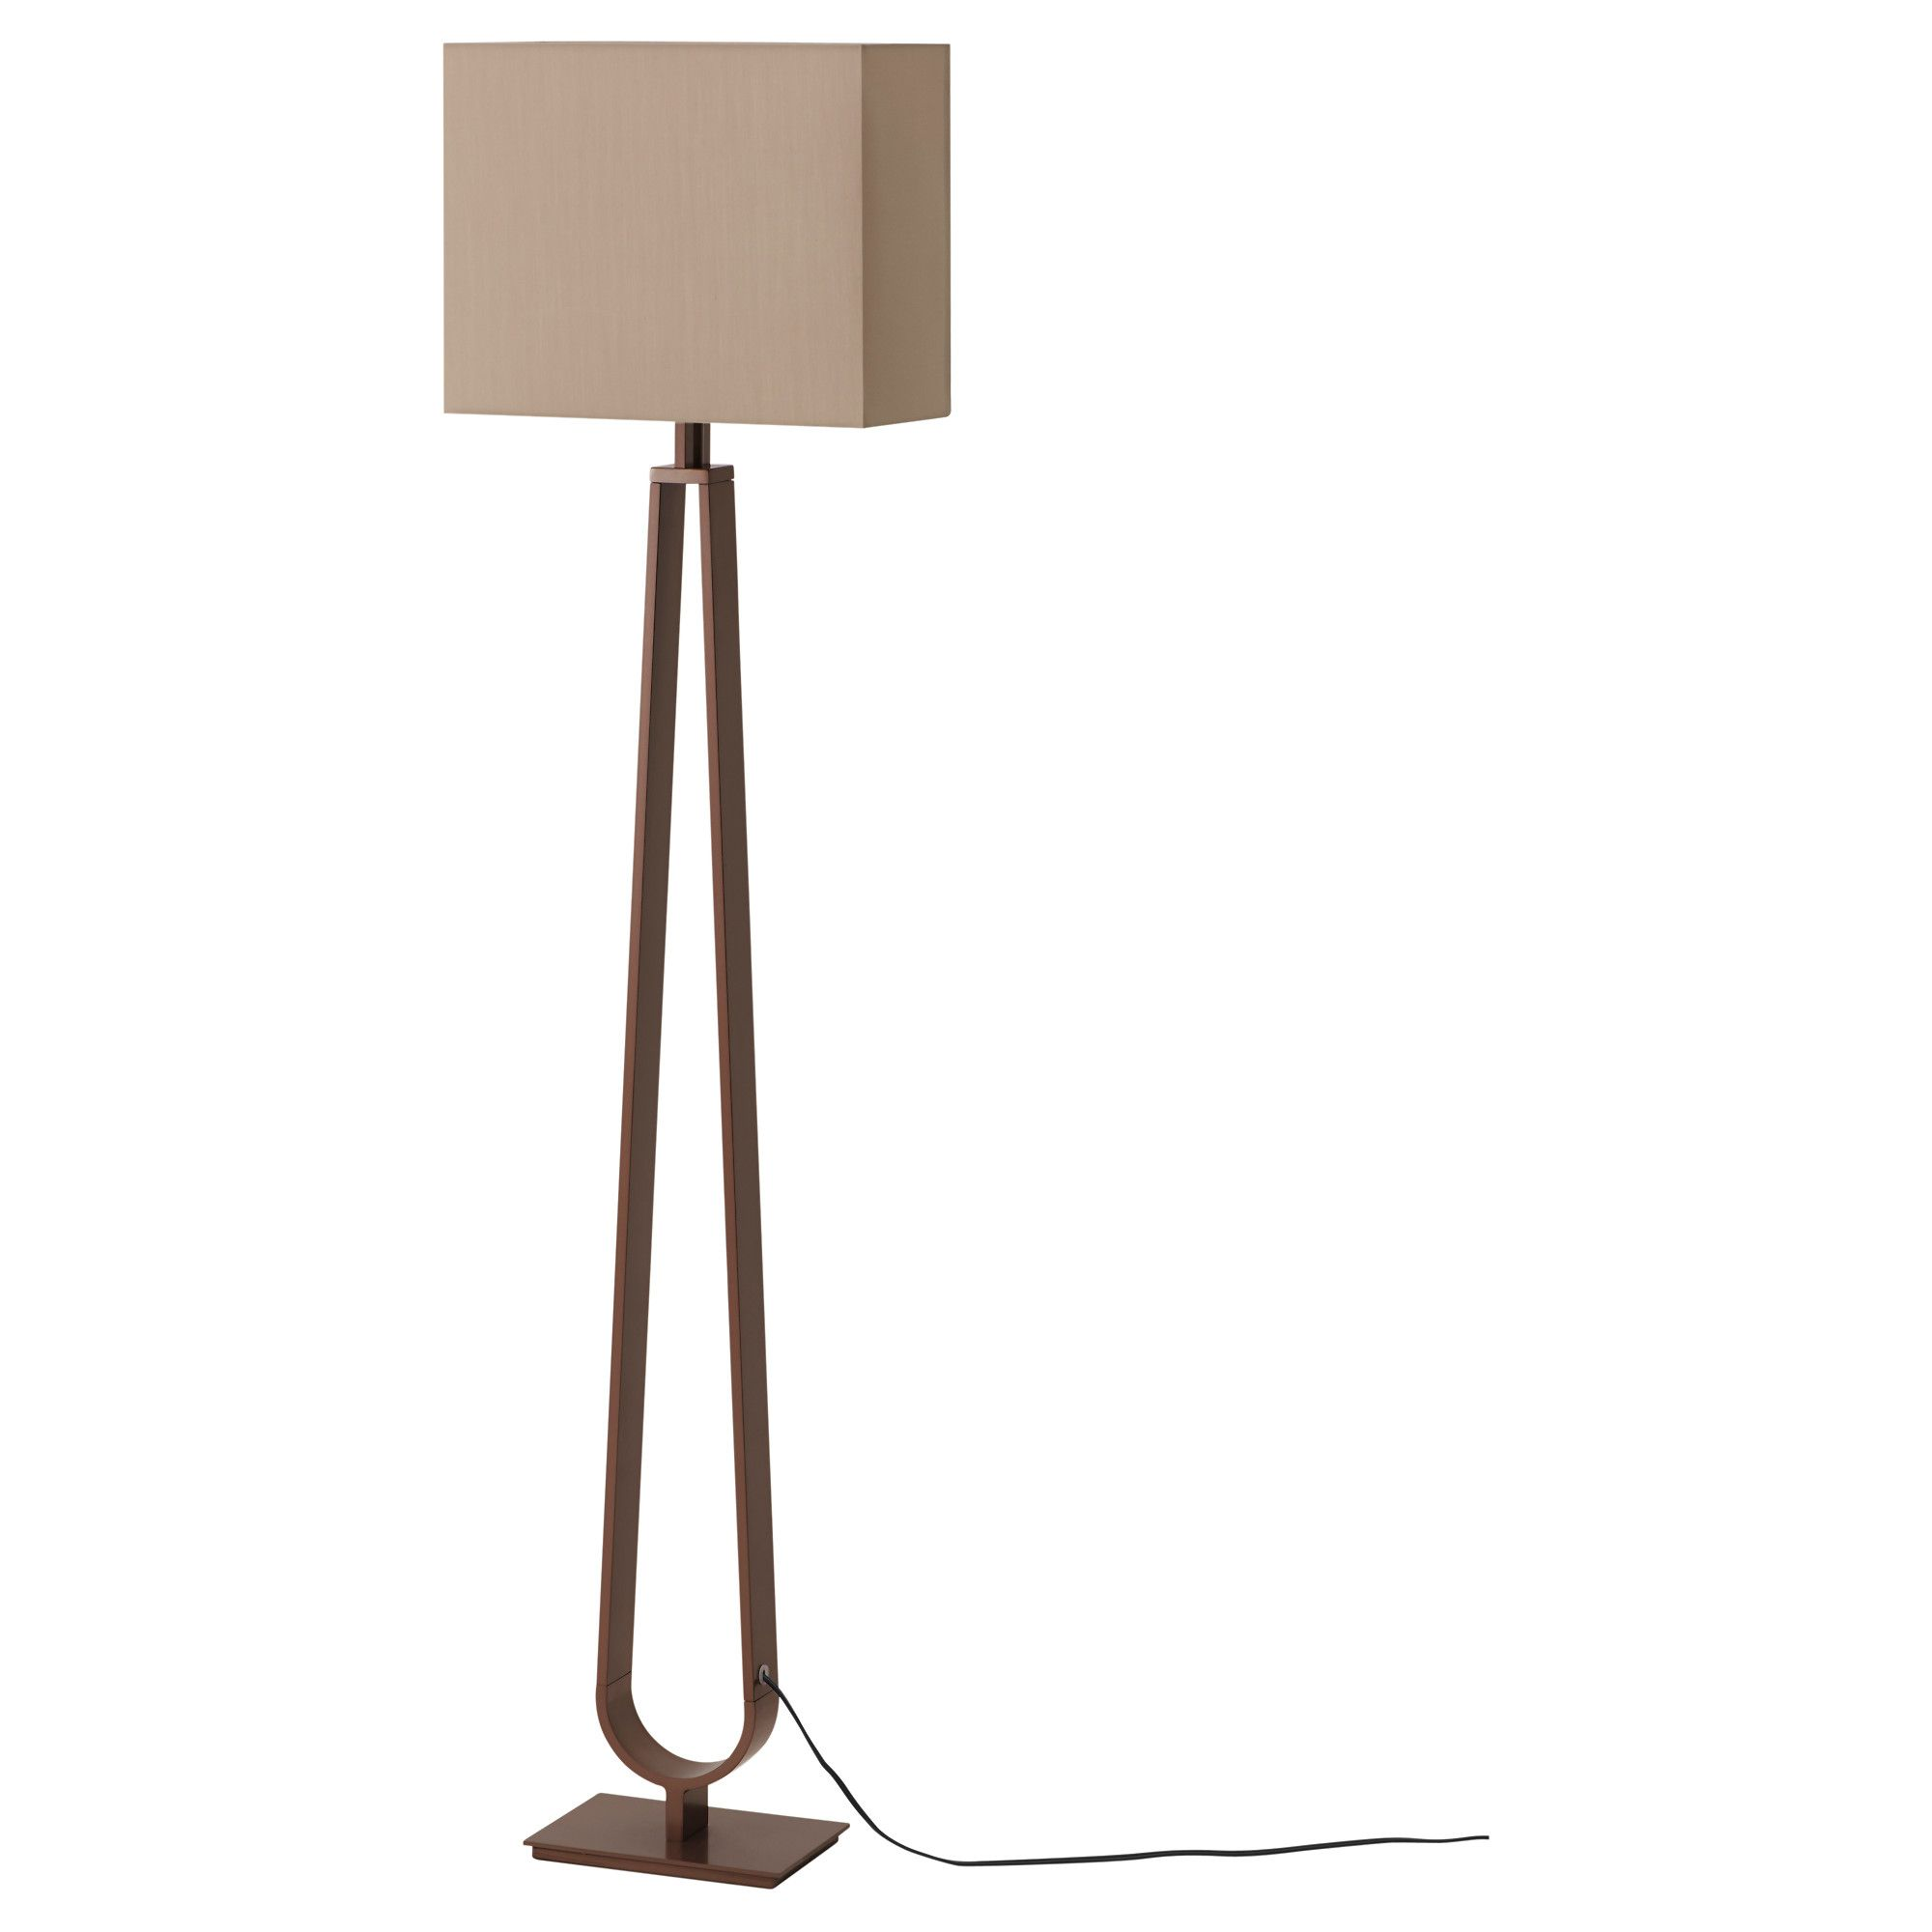 Lighting Tips For Every Room: KLABB, Floor Lamp, As The Light Can Be Dimmed, You